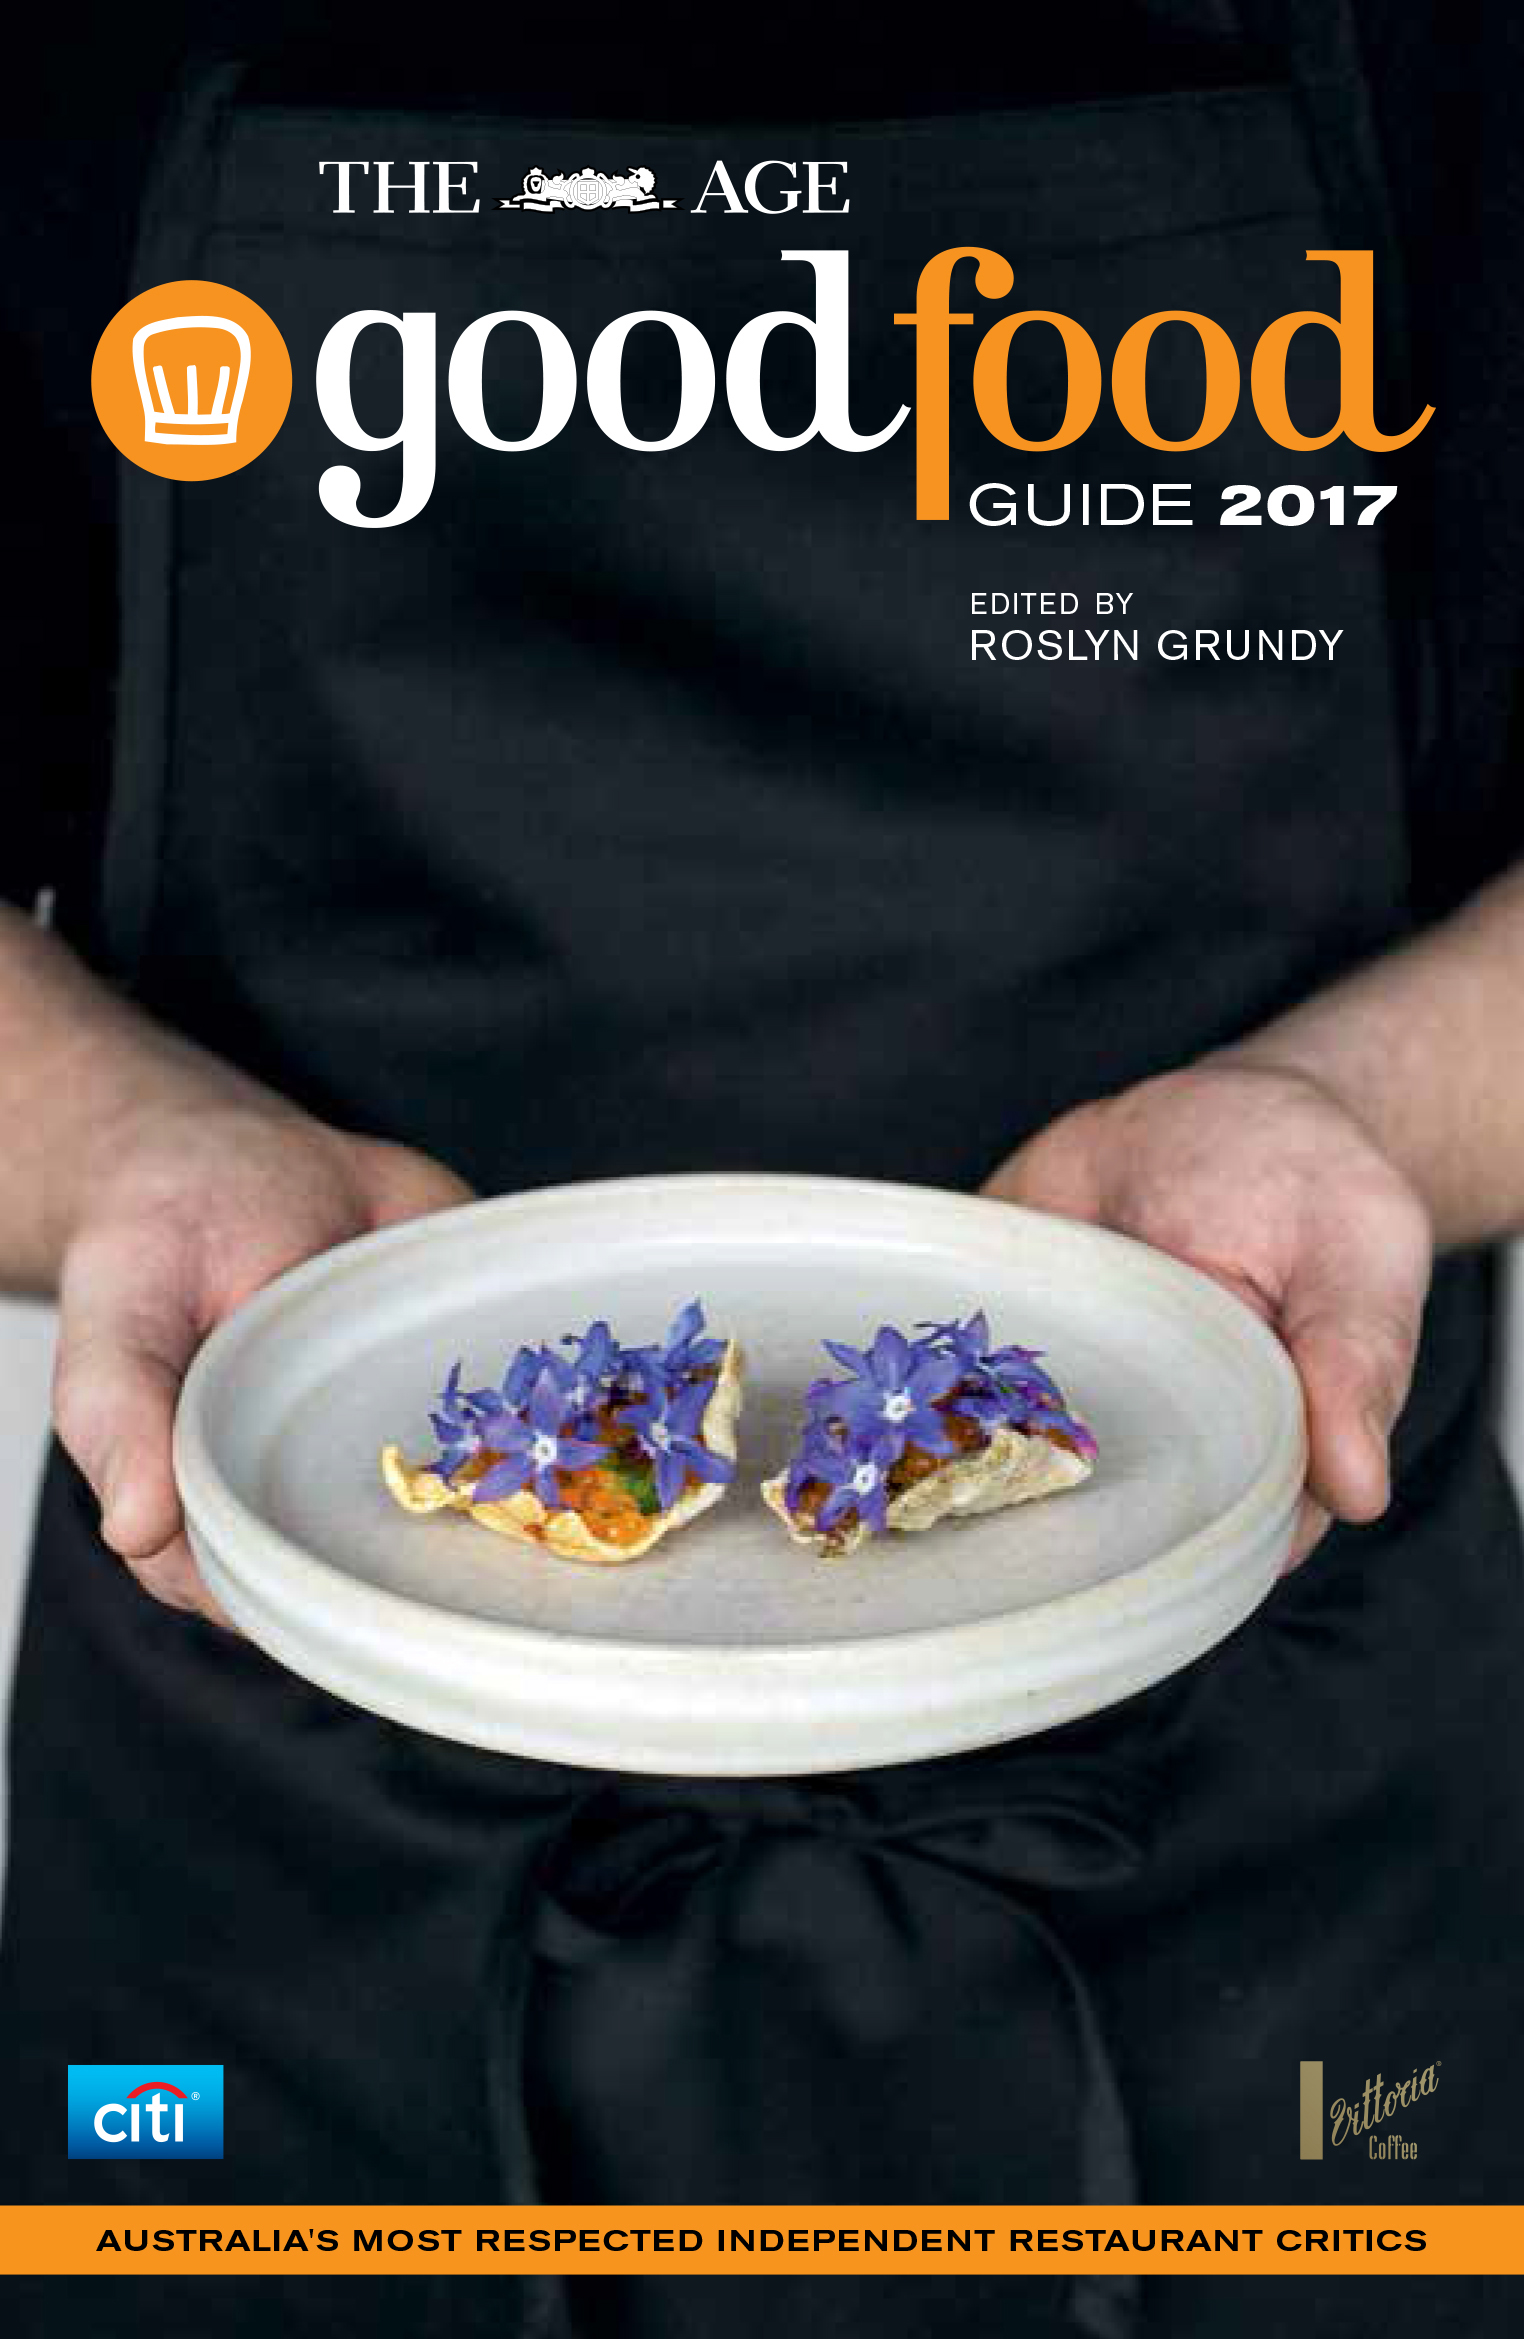 The age good food guide 2017 roslyn grundy for Cuisine good food guide 2017